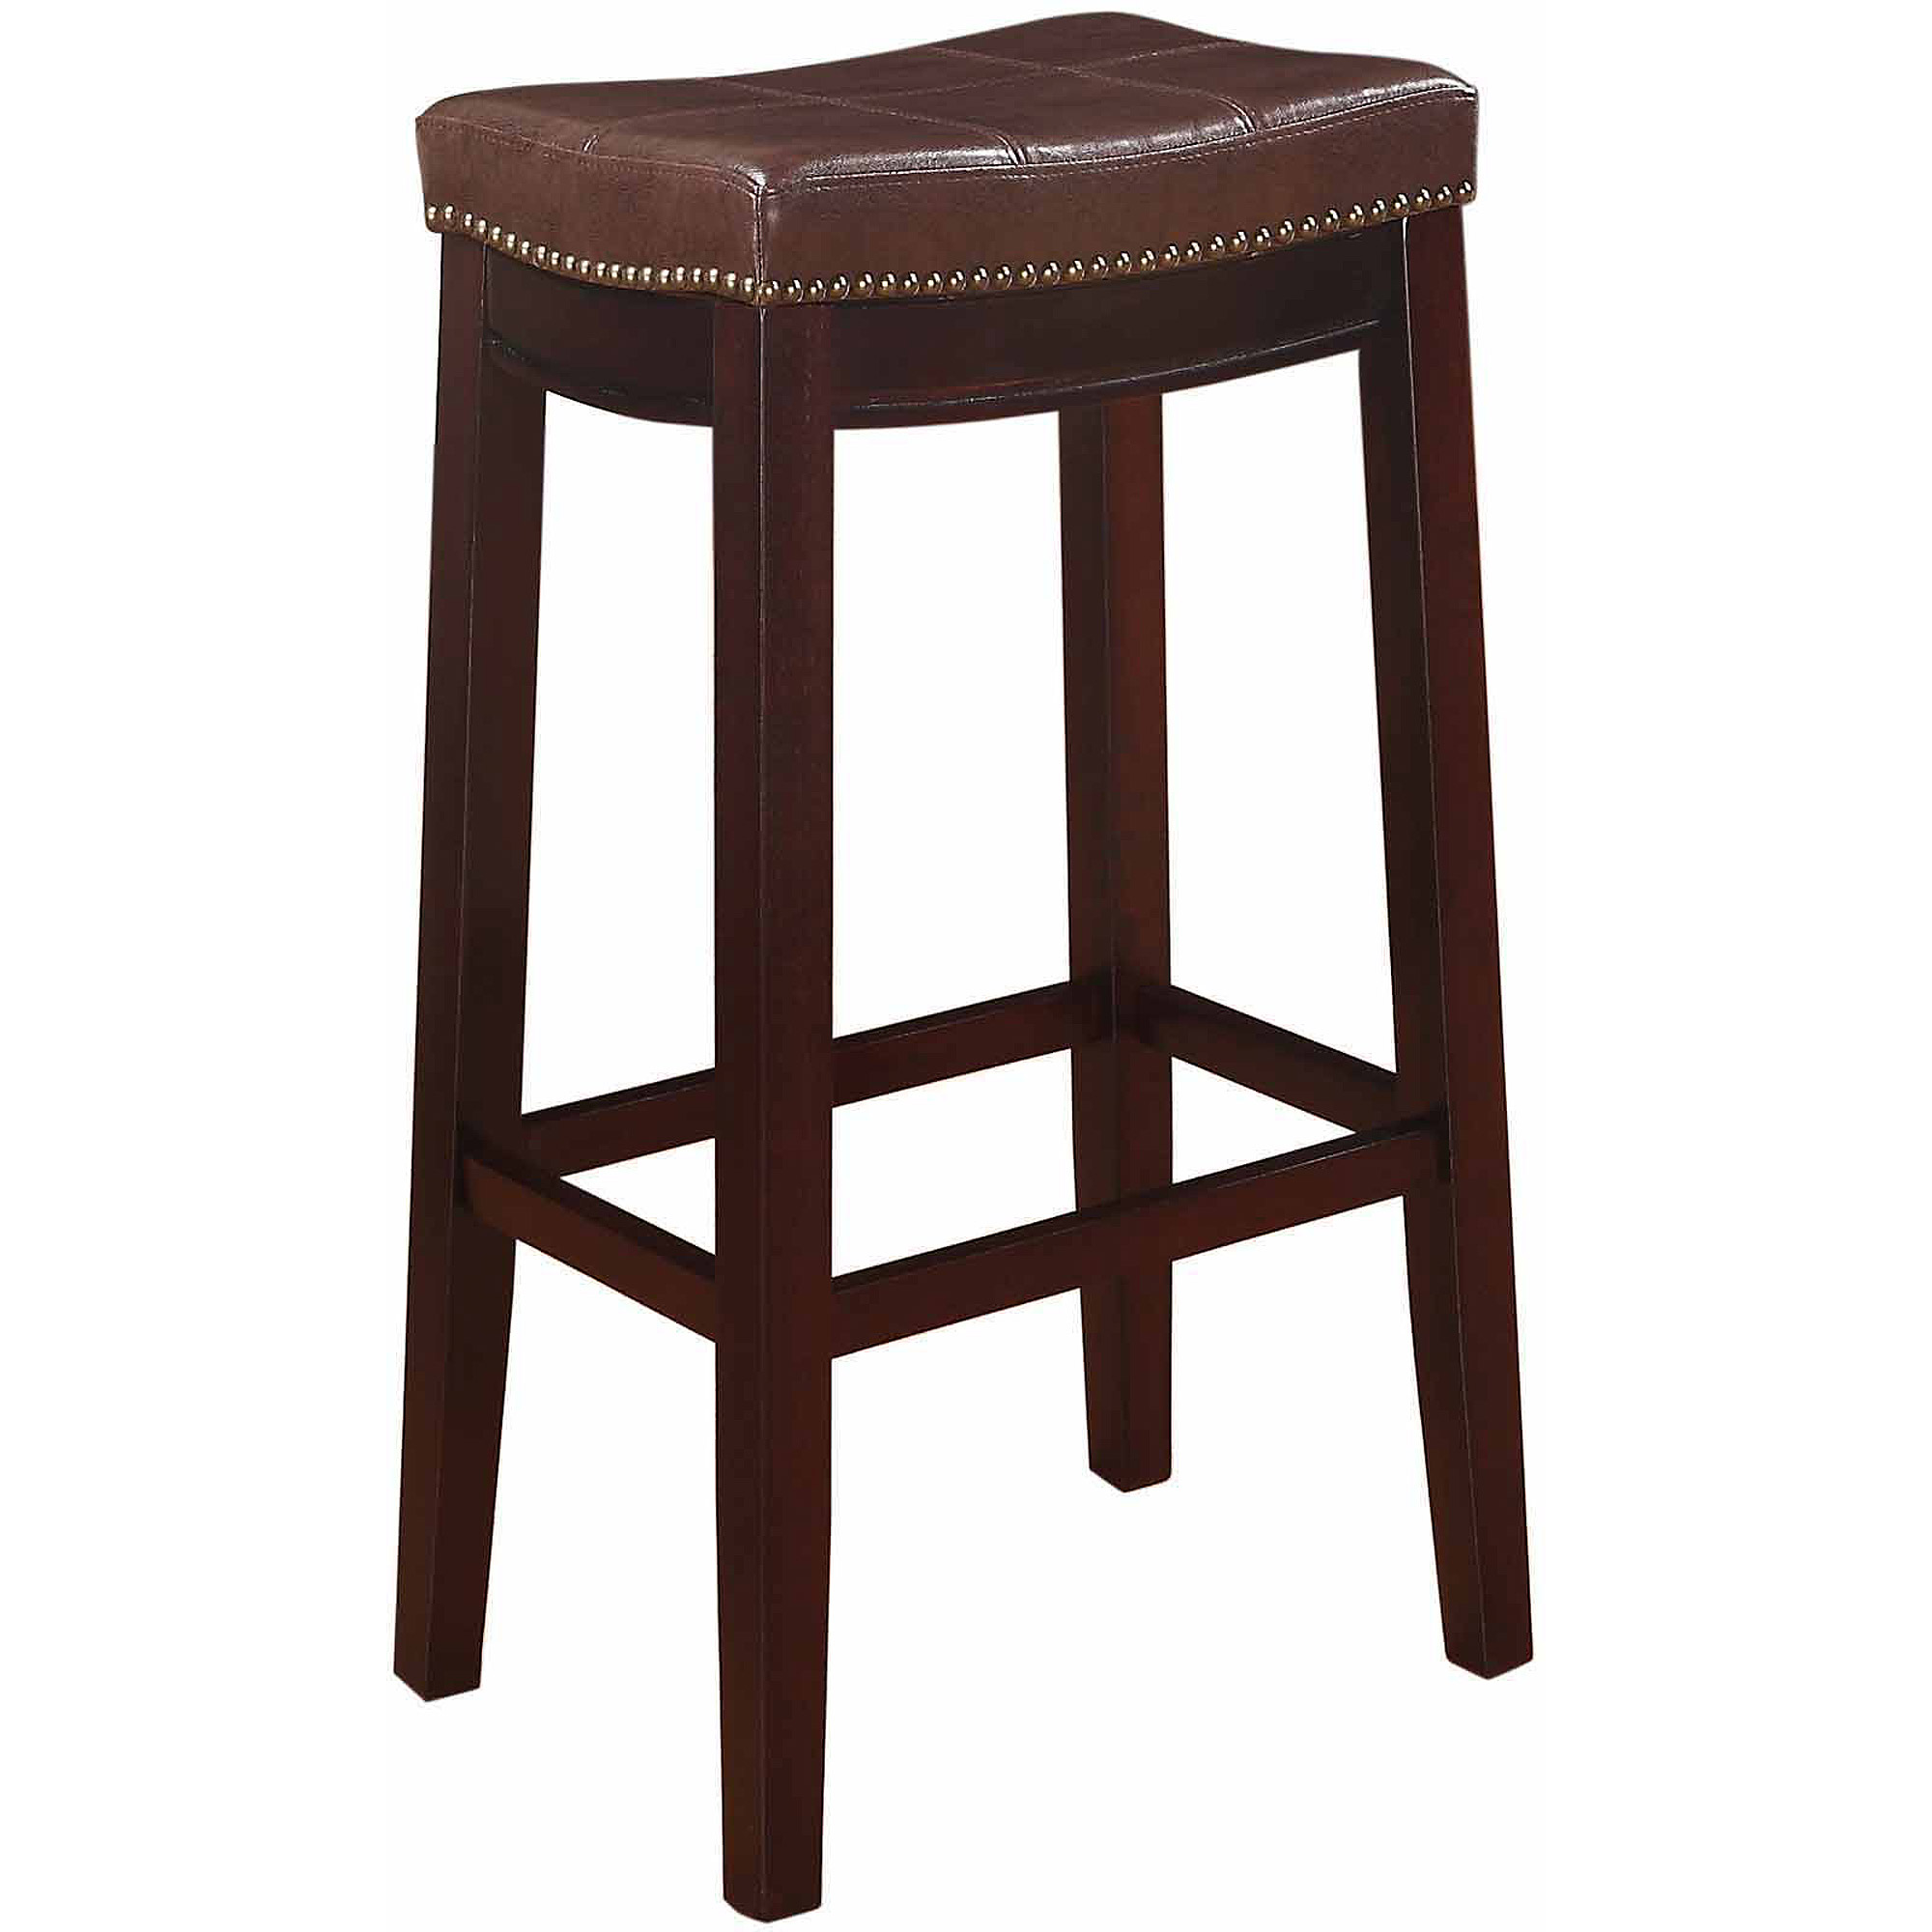 Linon Home Decor Claridge Patches 30 Quot Bar Height Stool